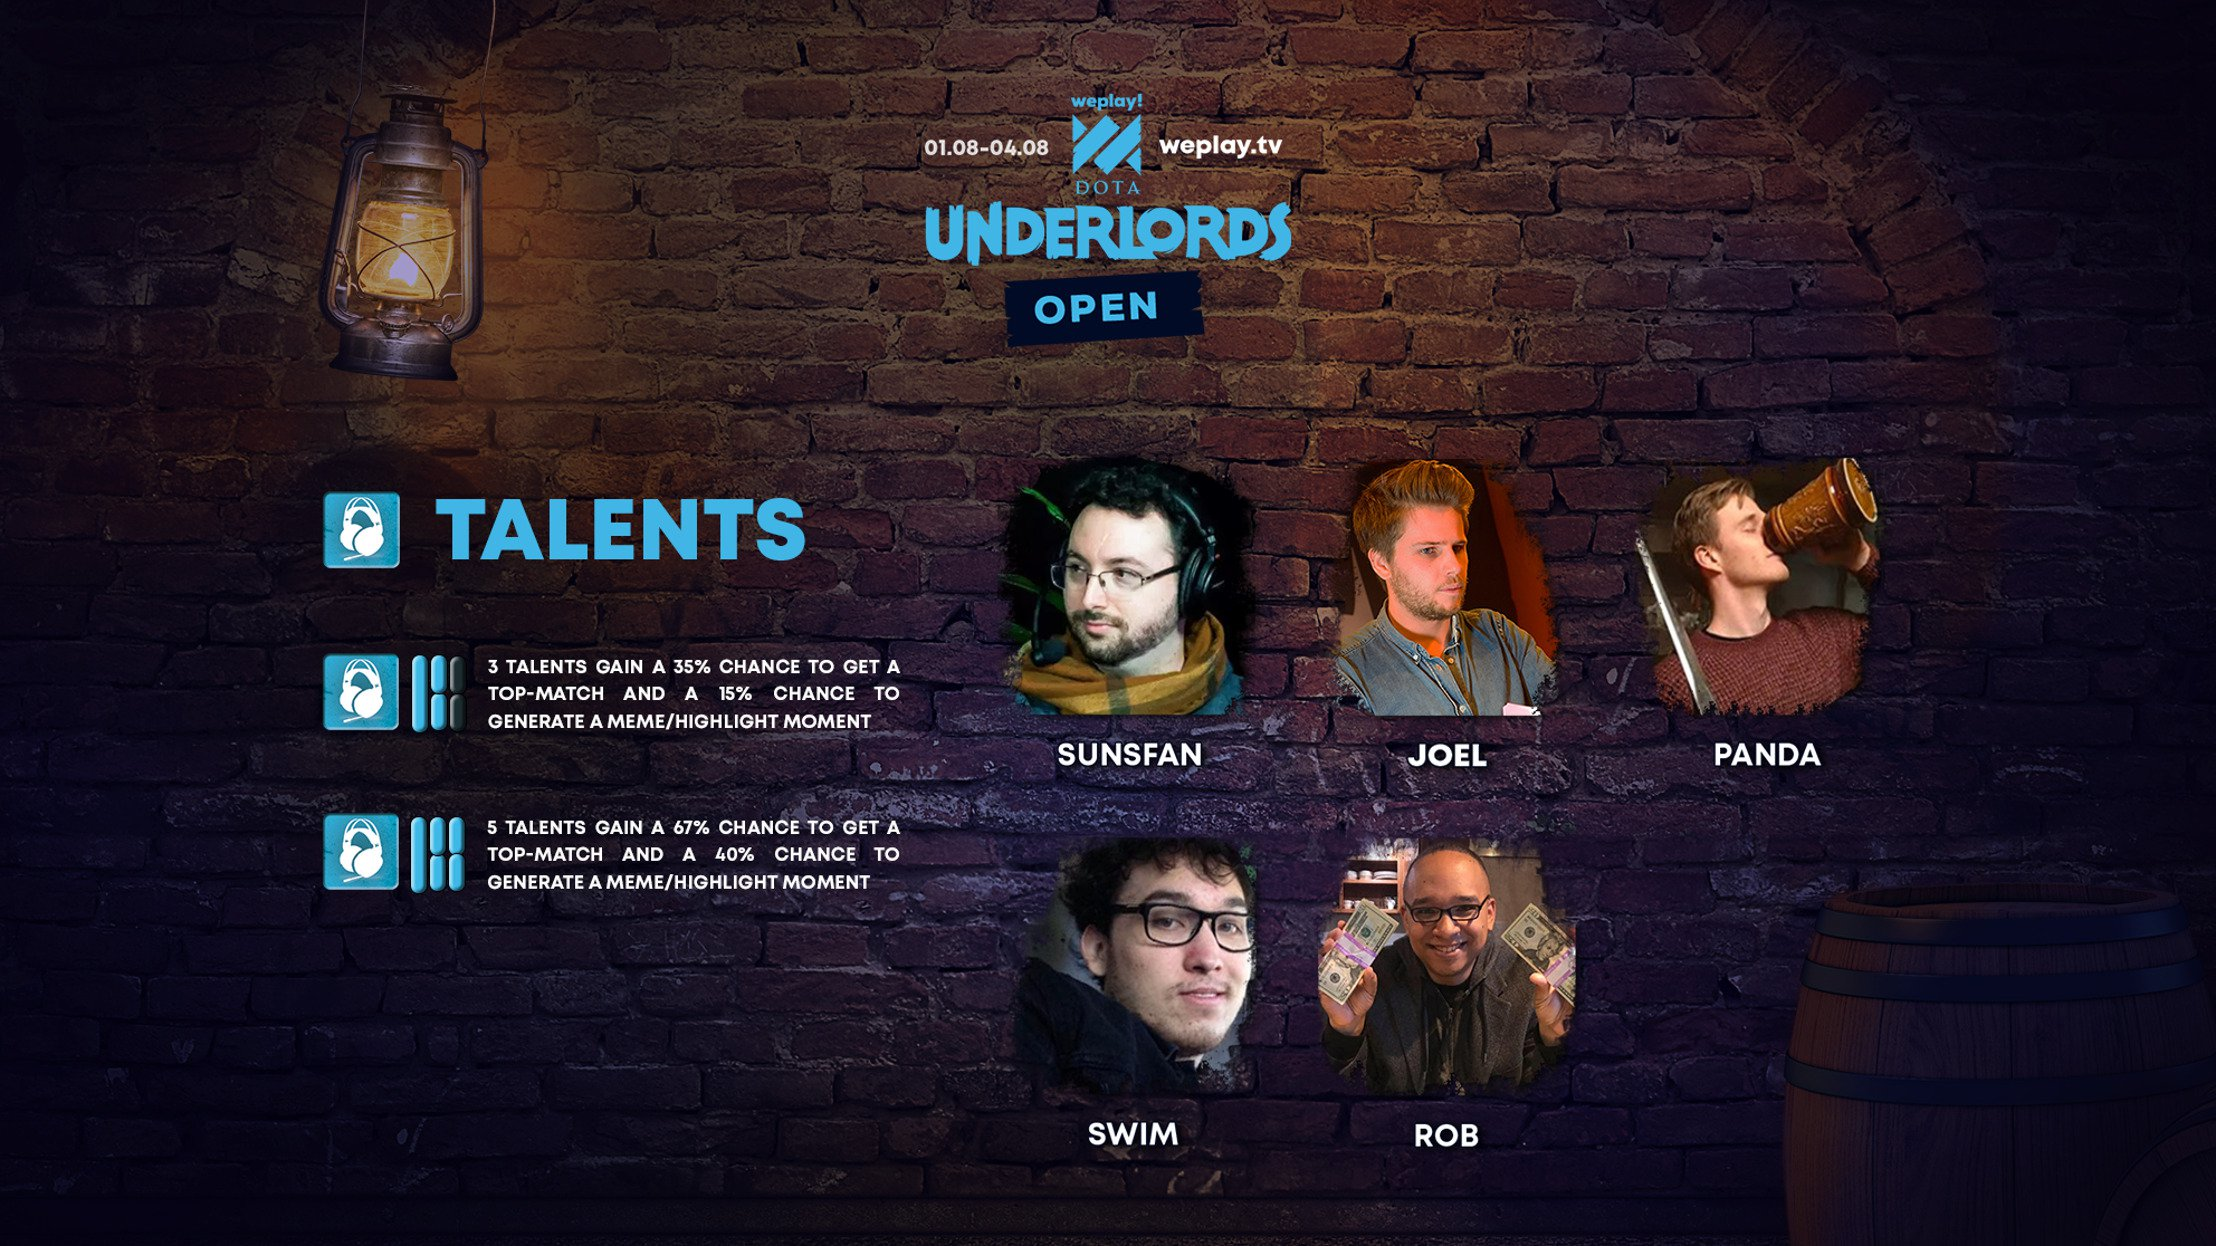 WePlay! Dota Underlords Open — English casters are announced